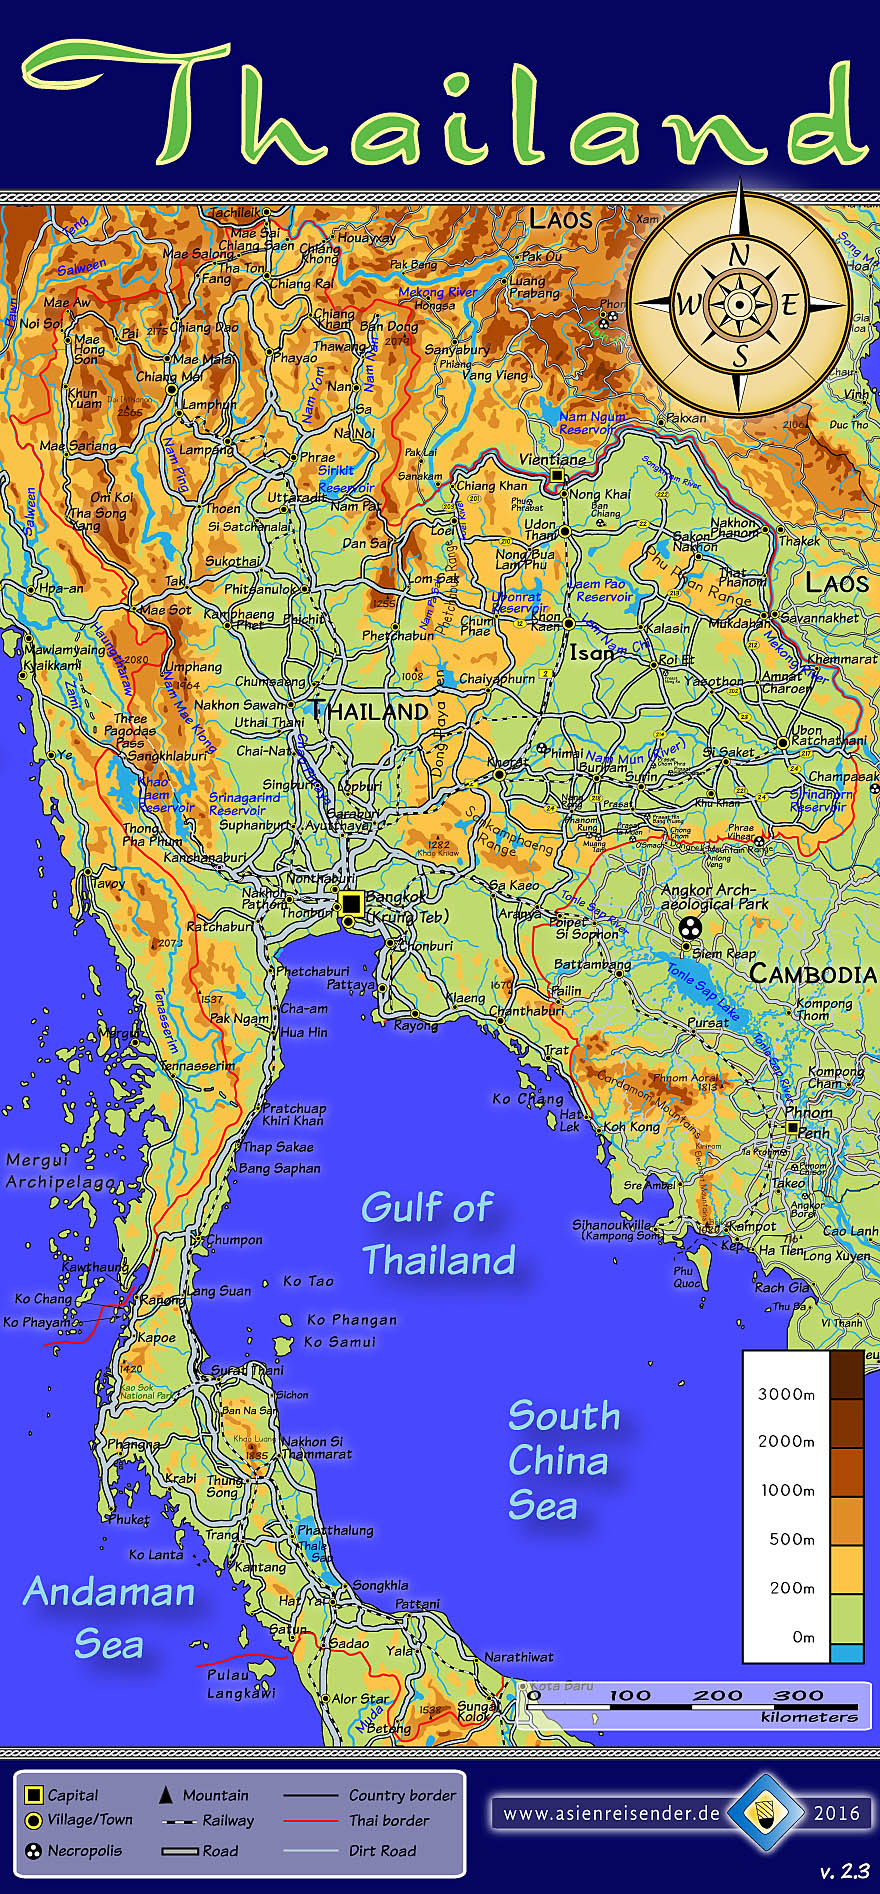 'Topographic, Interactive Map of Thailand' by Asienreisender